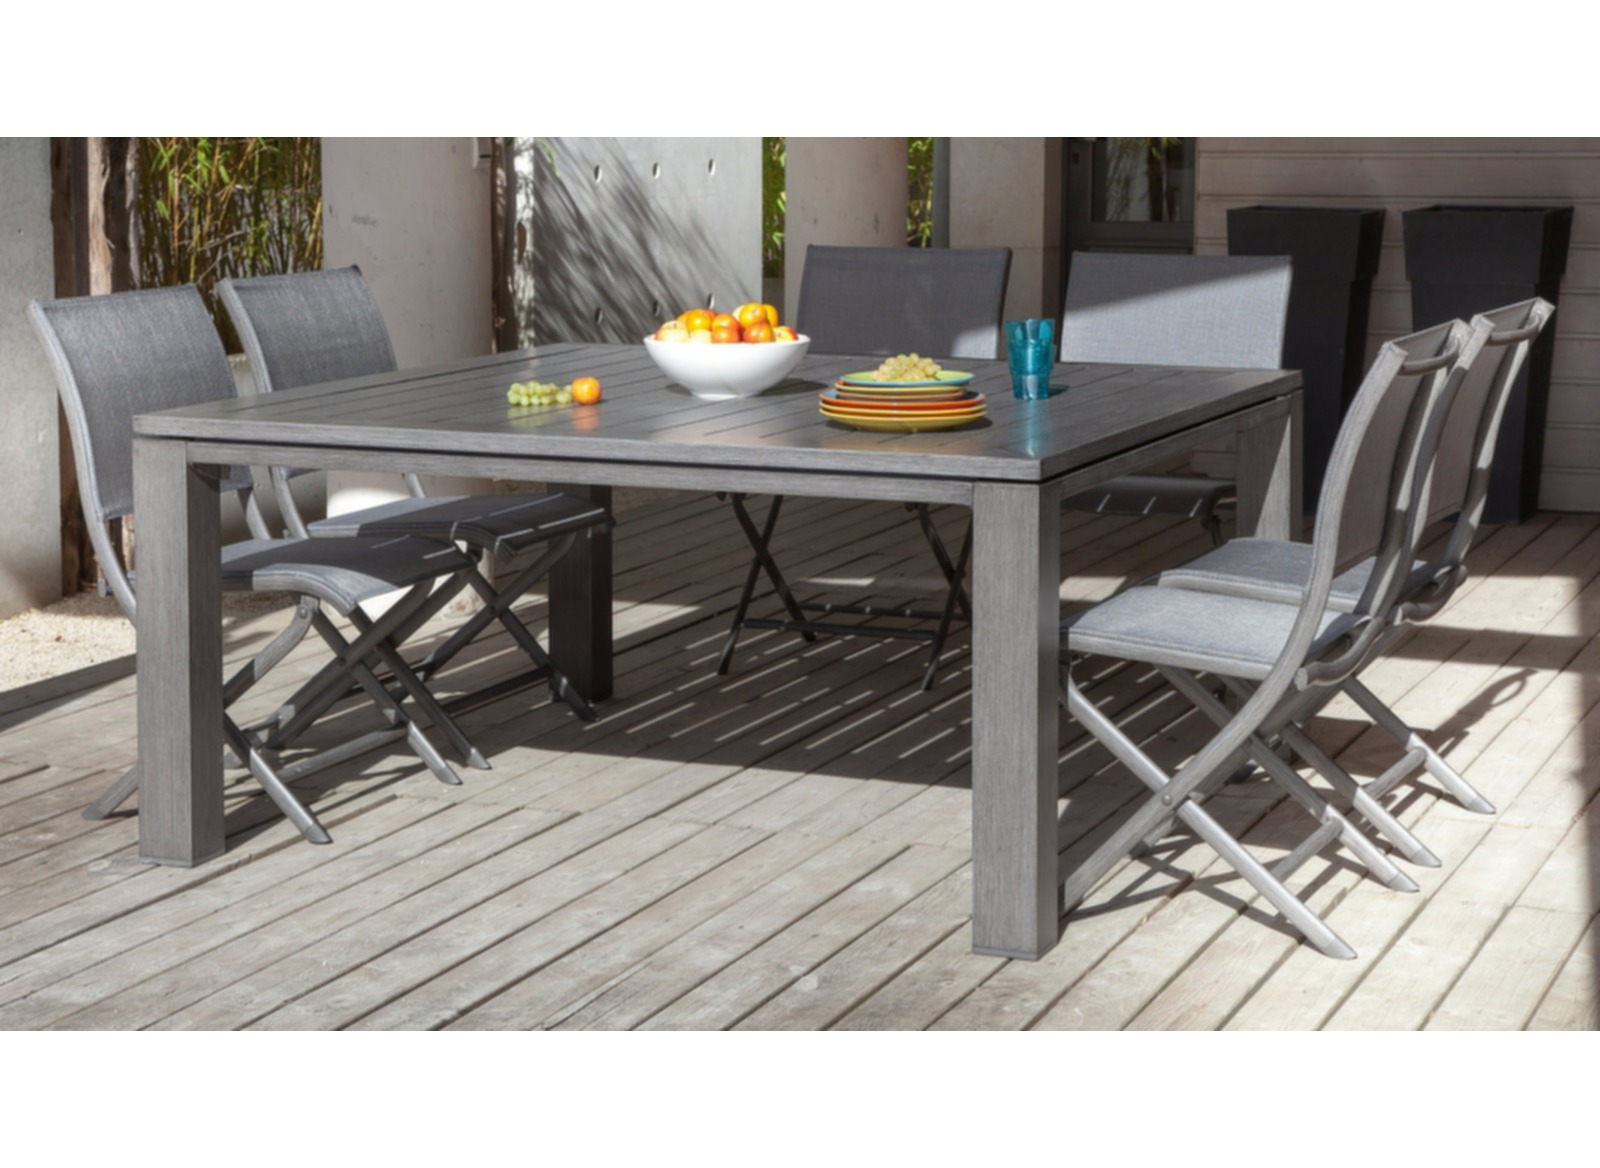 table carr e 8 personnes avec rallonge id es de table jardin carree 8 personnes. Black Bedroom Furniture Sets. Home Design Ideas